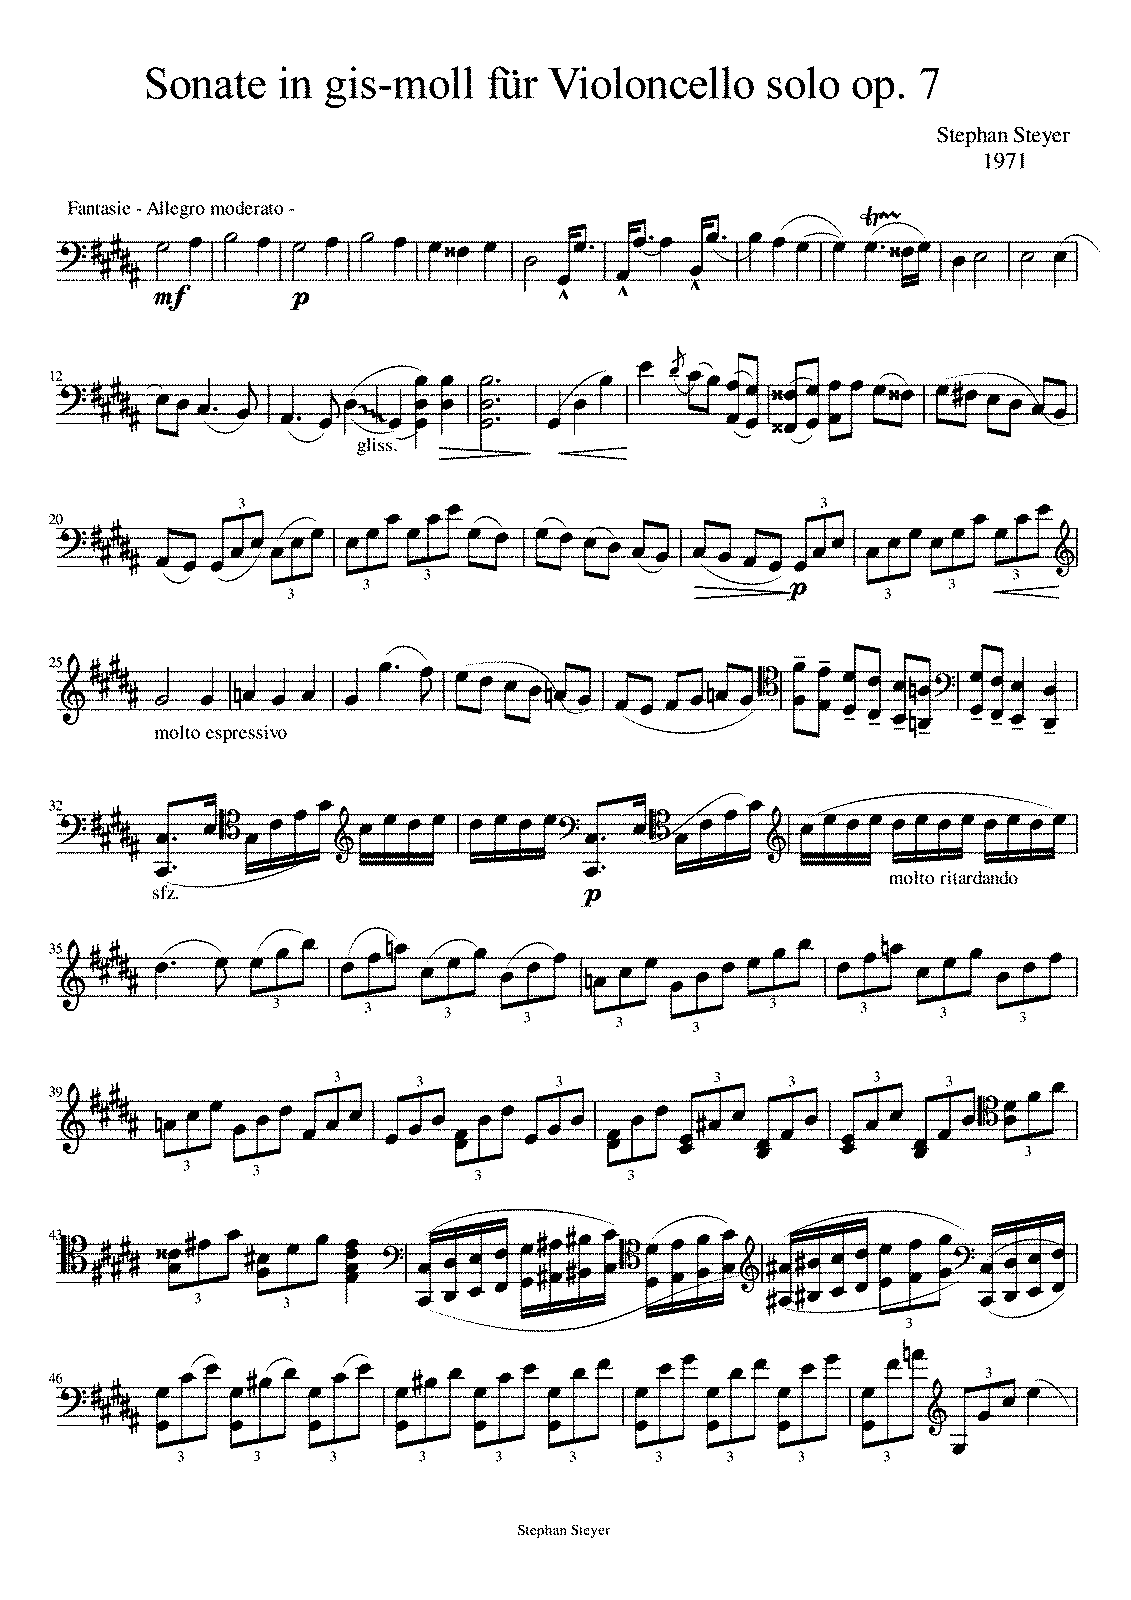 PMLP561680-Sonate in gis-moll fuer Violoncello solo op 7 Endfassung.pdf